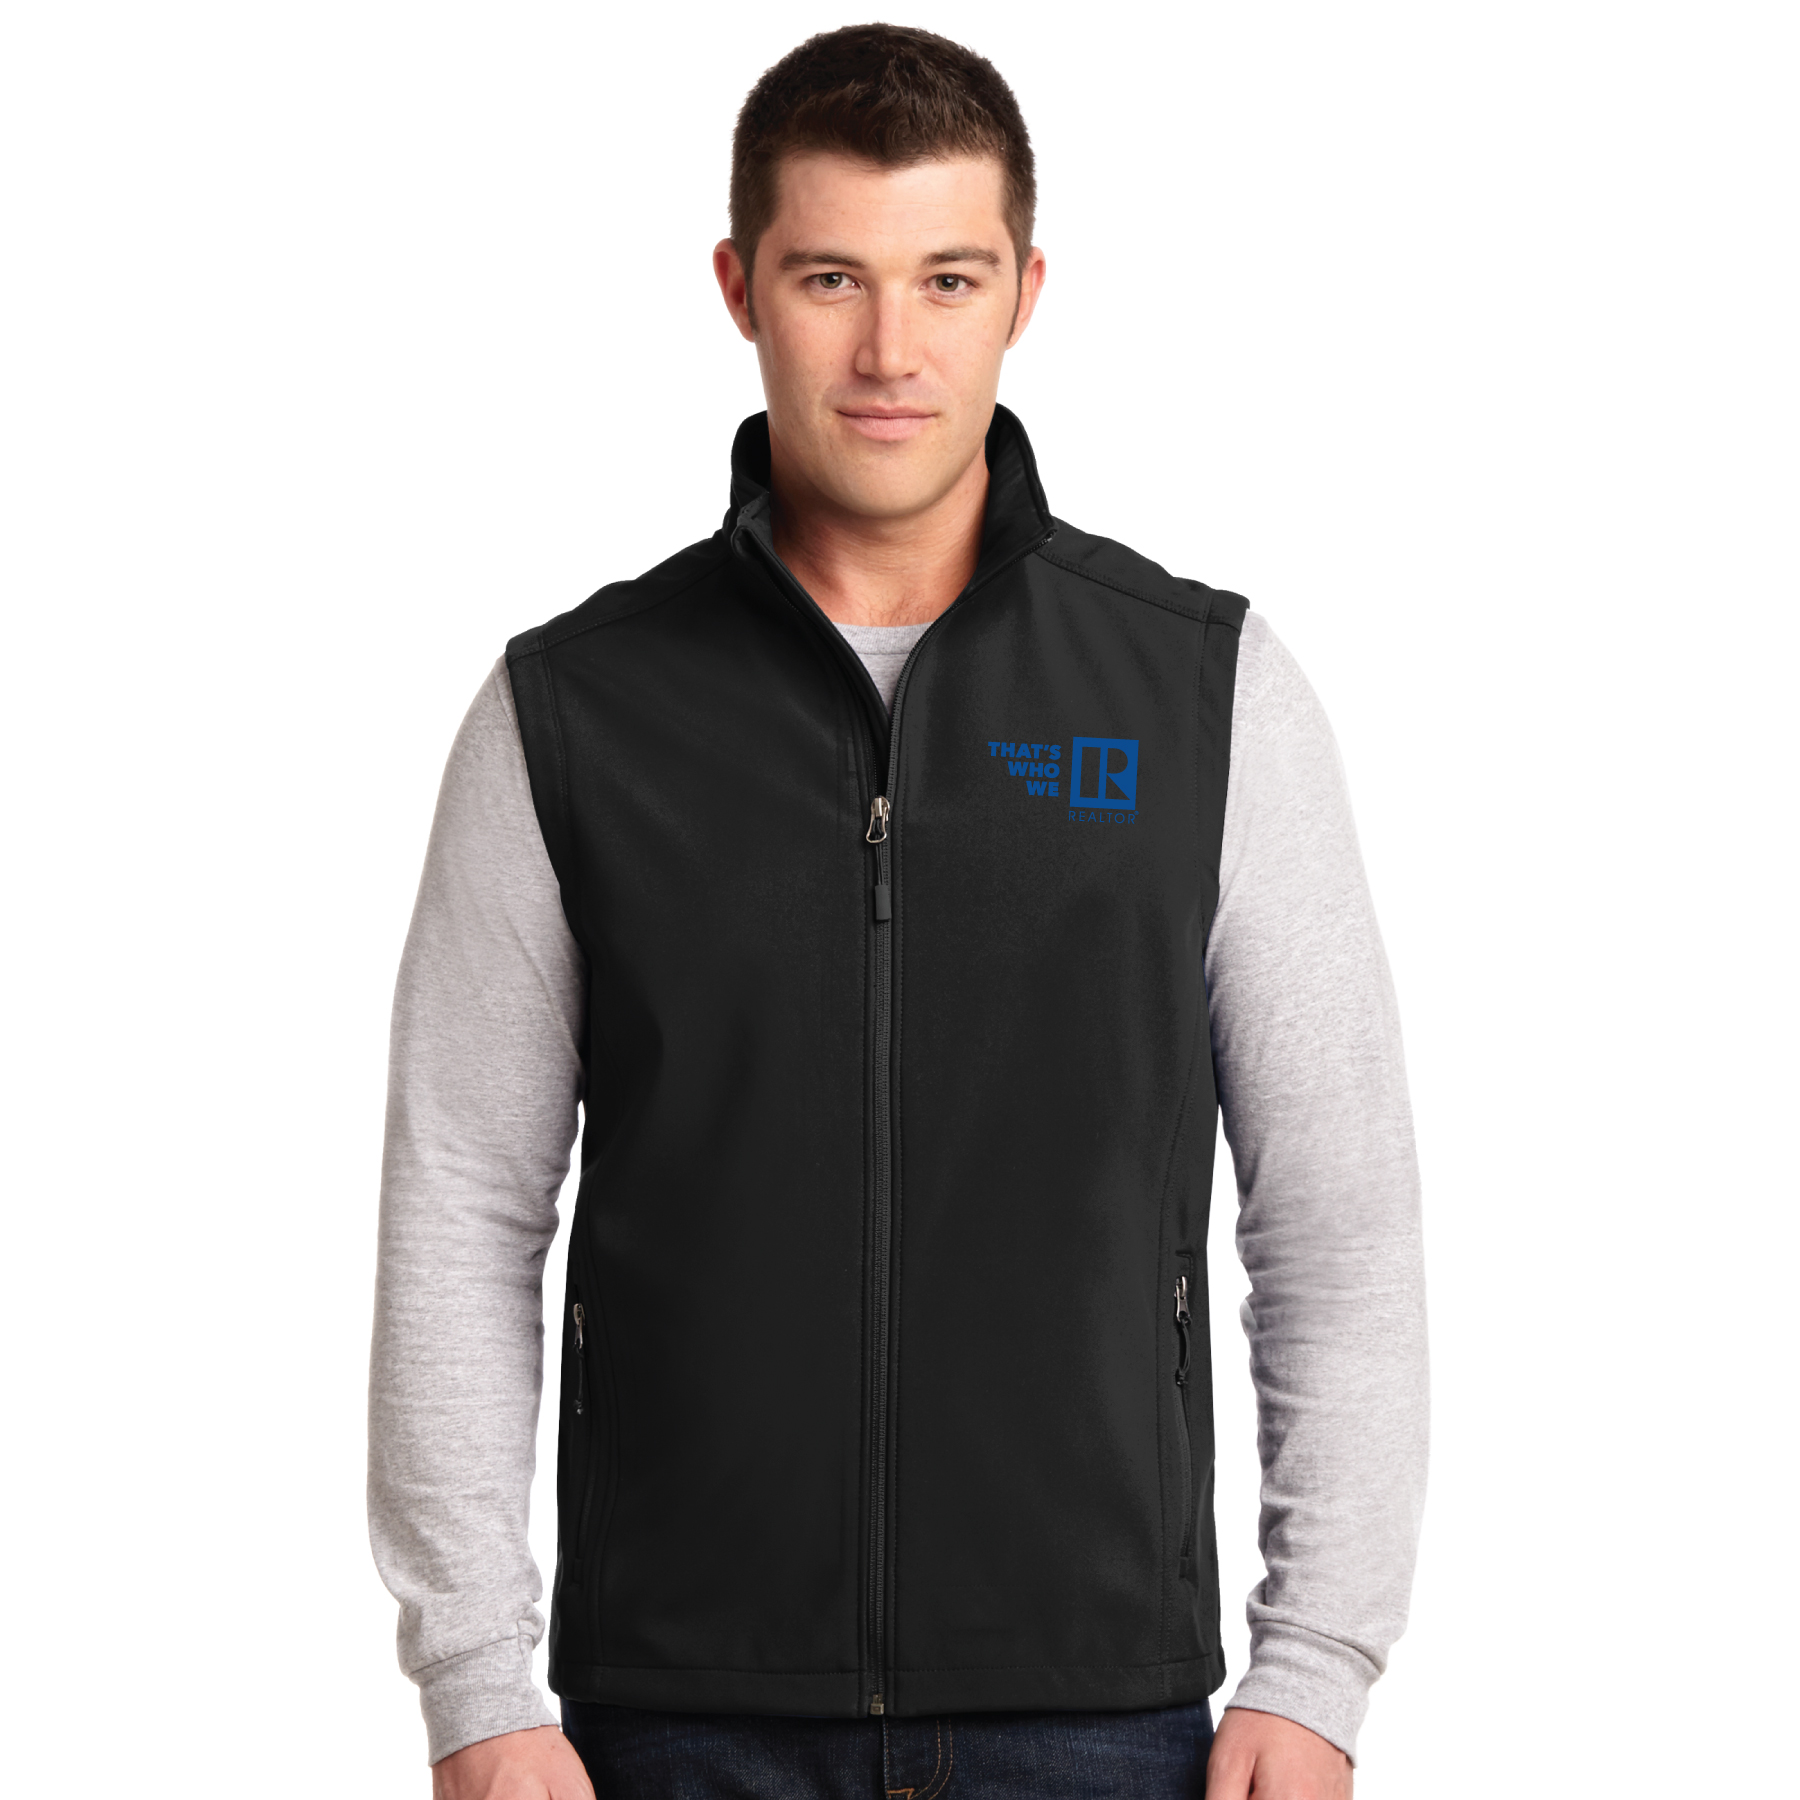 """Thats Who We R"" Mens Core Soft Shell Vest twwr,ThatsWhoWeR,Thats,TWWR,ThatWho,ThatsWho,Twwr,Thats,Whos,We,Ares,Twwr,Thats,Whos,Wes,Ares,soft, shells, vests, mens"